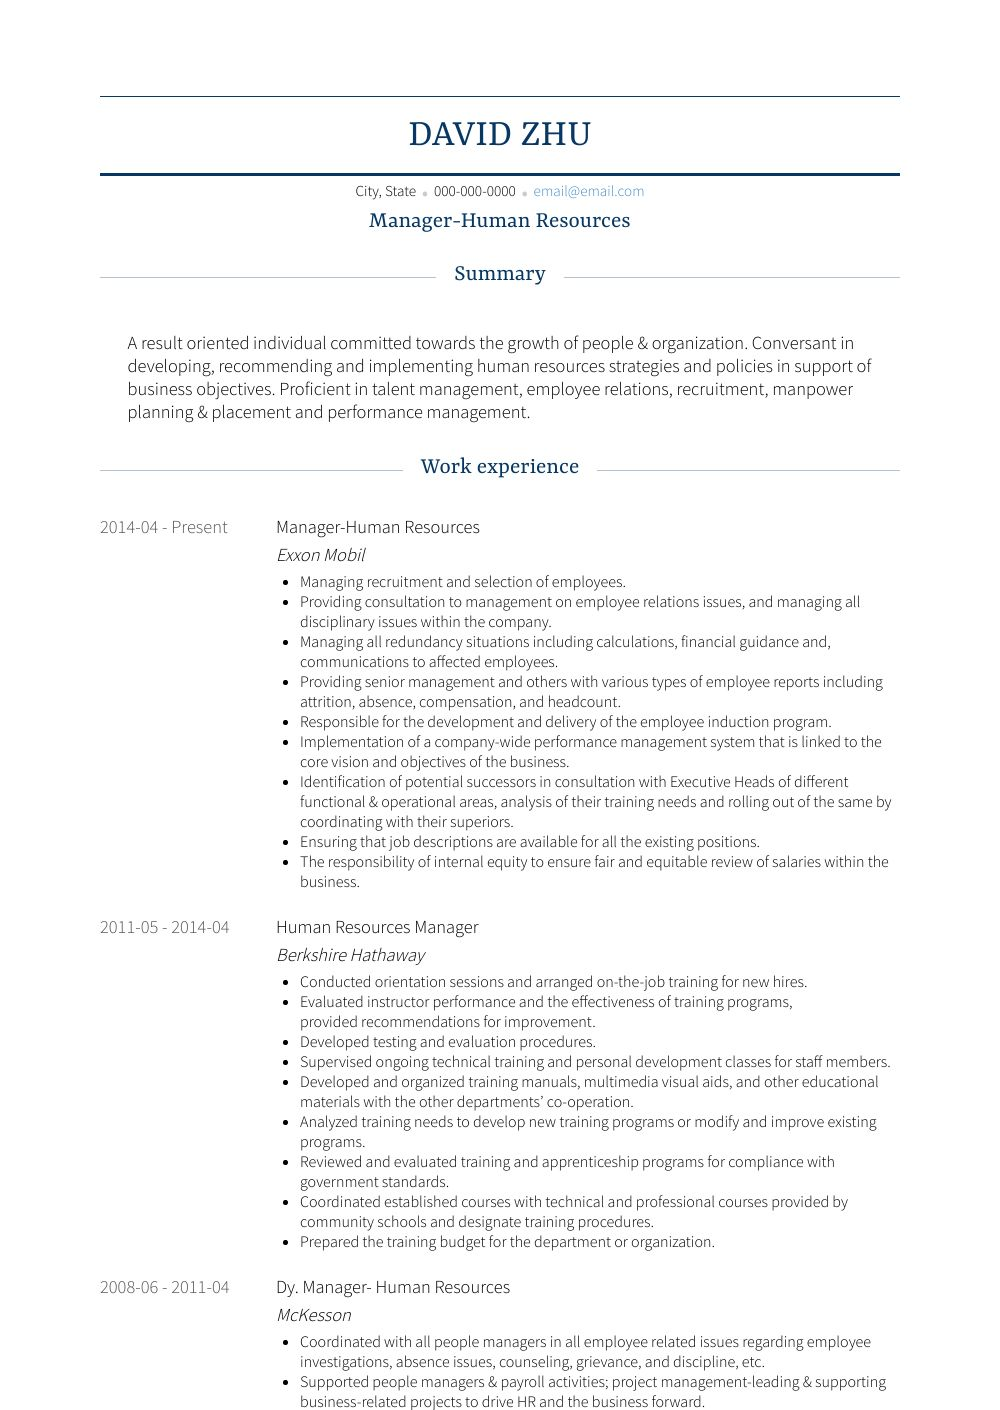 Here Some Writing Tips And Examples Of Human Resources Resume With Images Business Analyst Resume Human Resources Resume Job Resume Examples